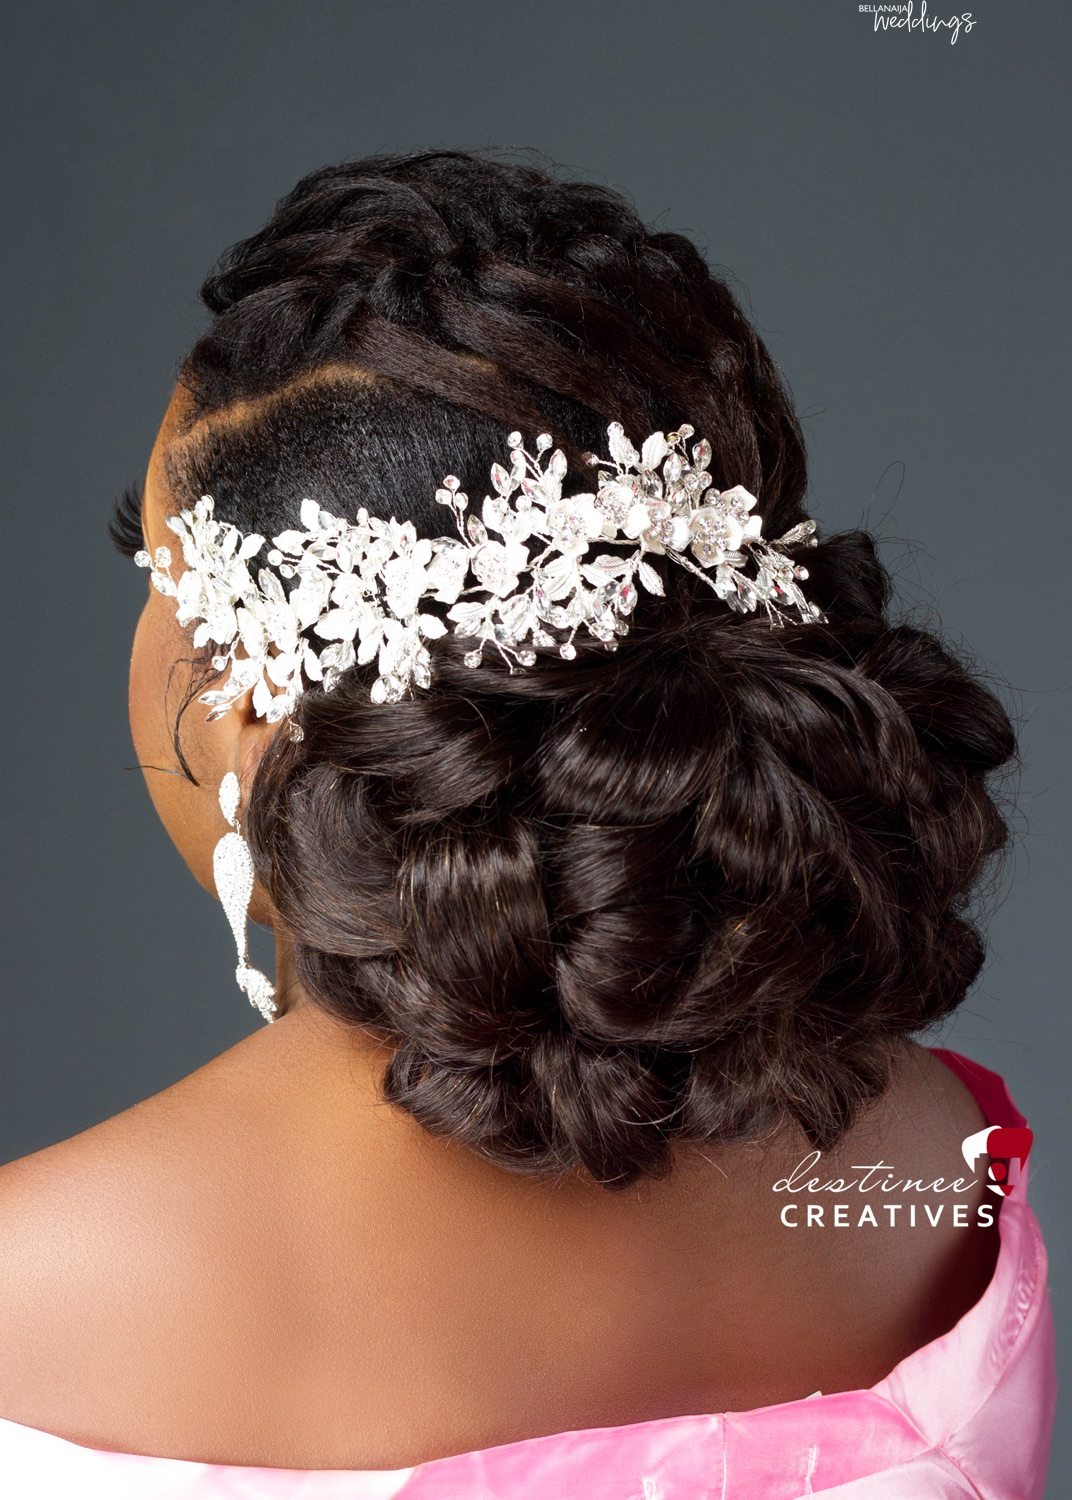 Thinking of How to Style Your Bridal Hair? Didi Richards has 5 Tips to Help